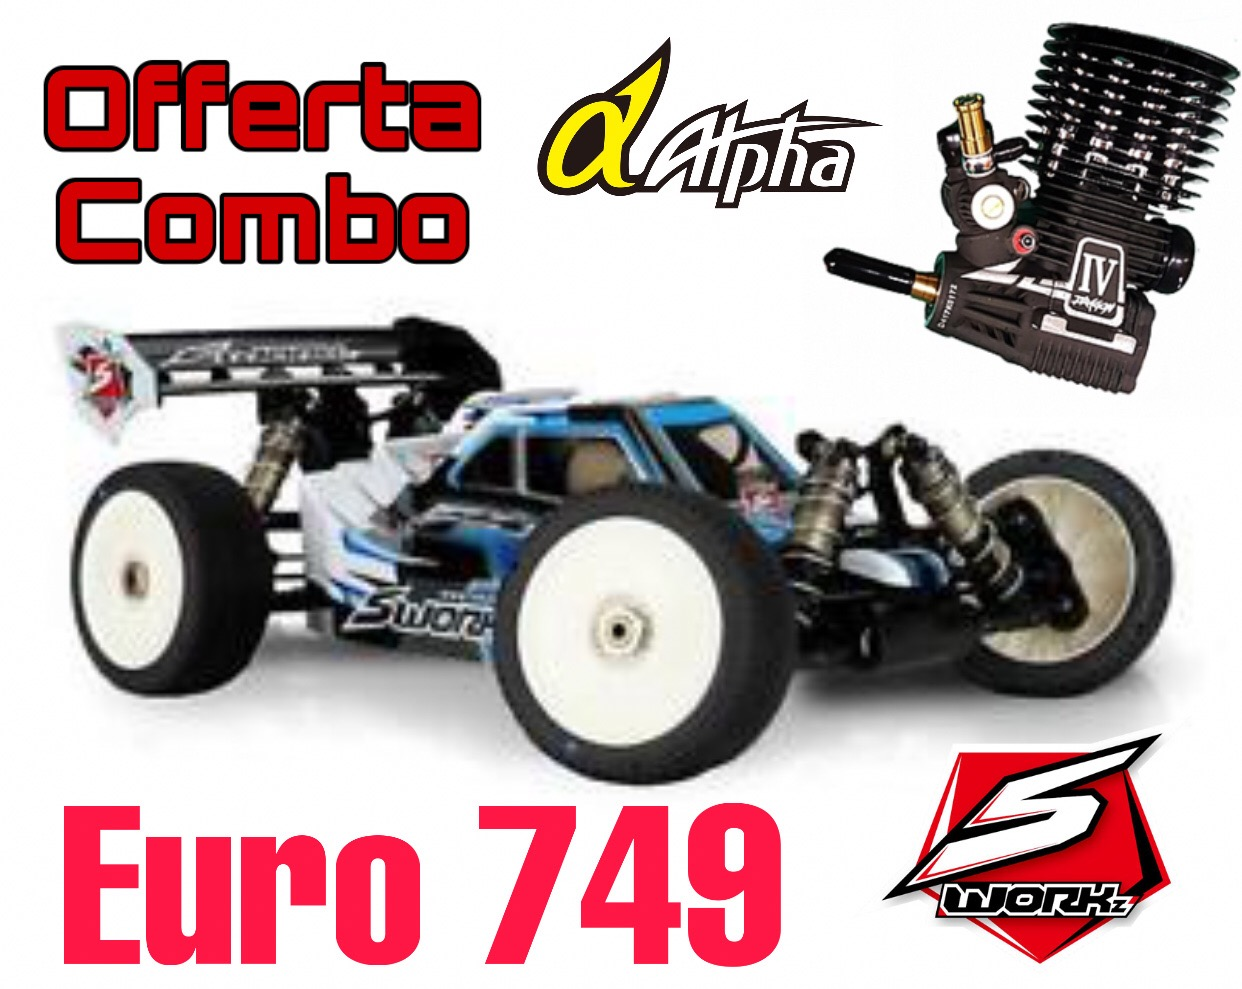 COMBO SWORKz S35-3 1/8 Pro Nitro Buggy Kit + Apha Dragon IV